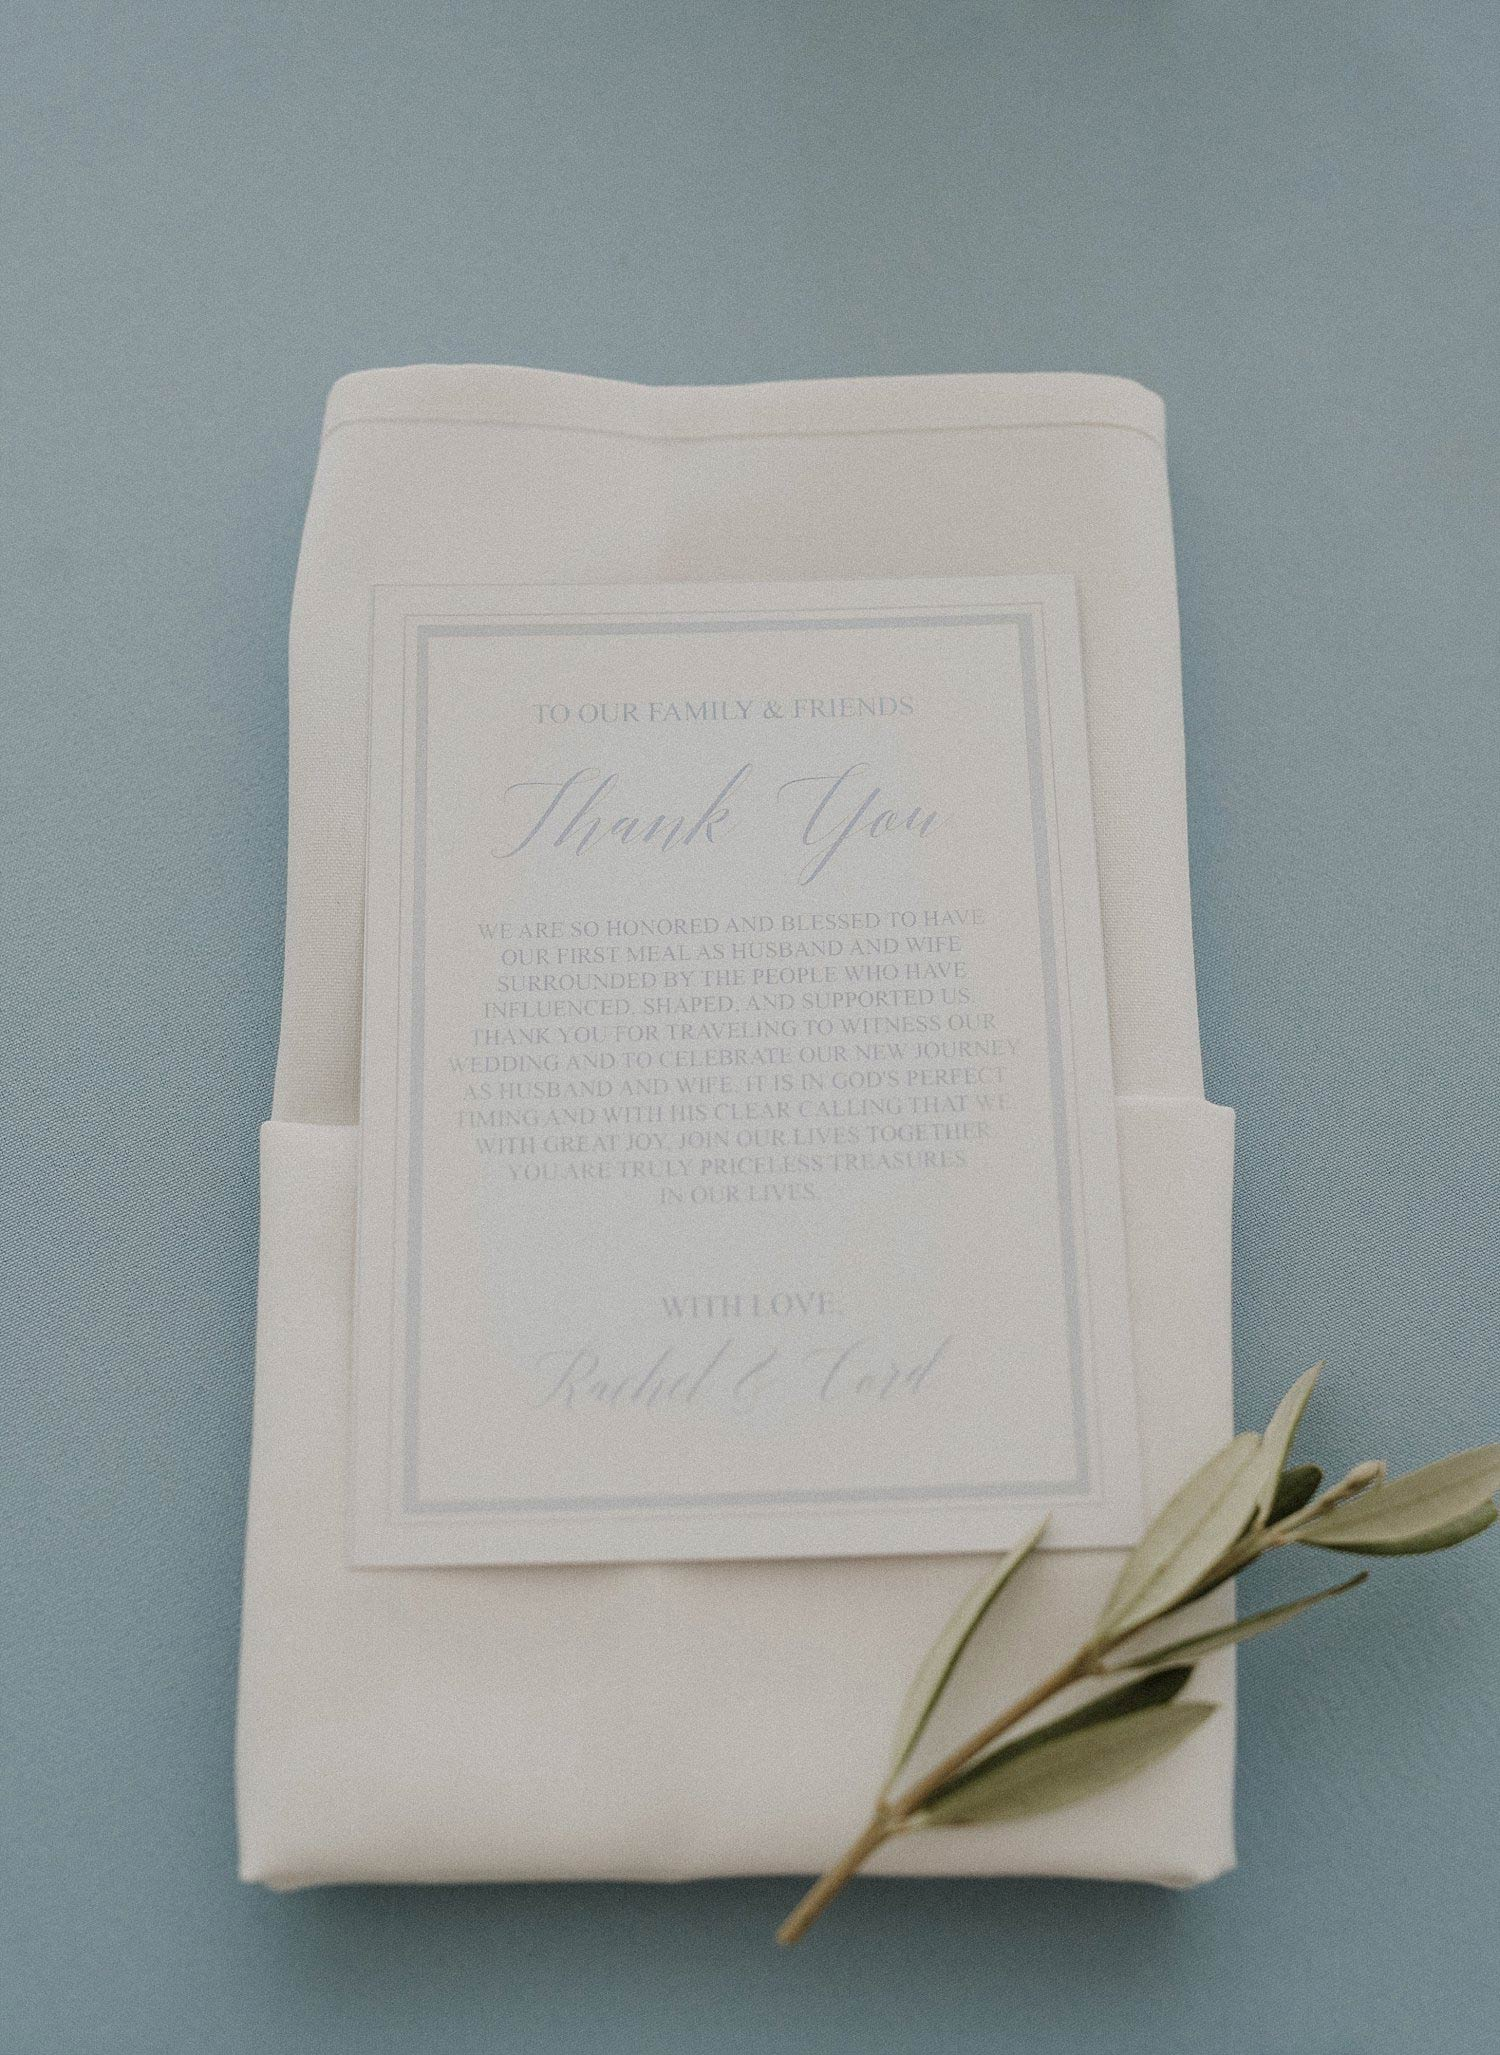 Menu on folded napking with olive branch on top of light blue linen